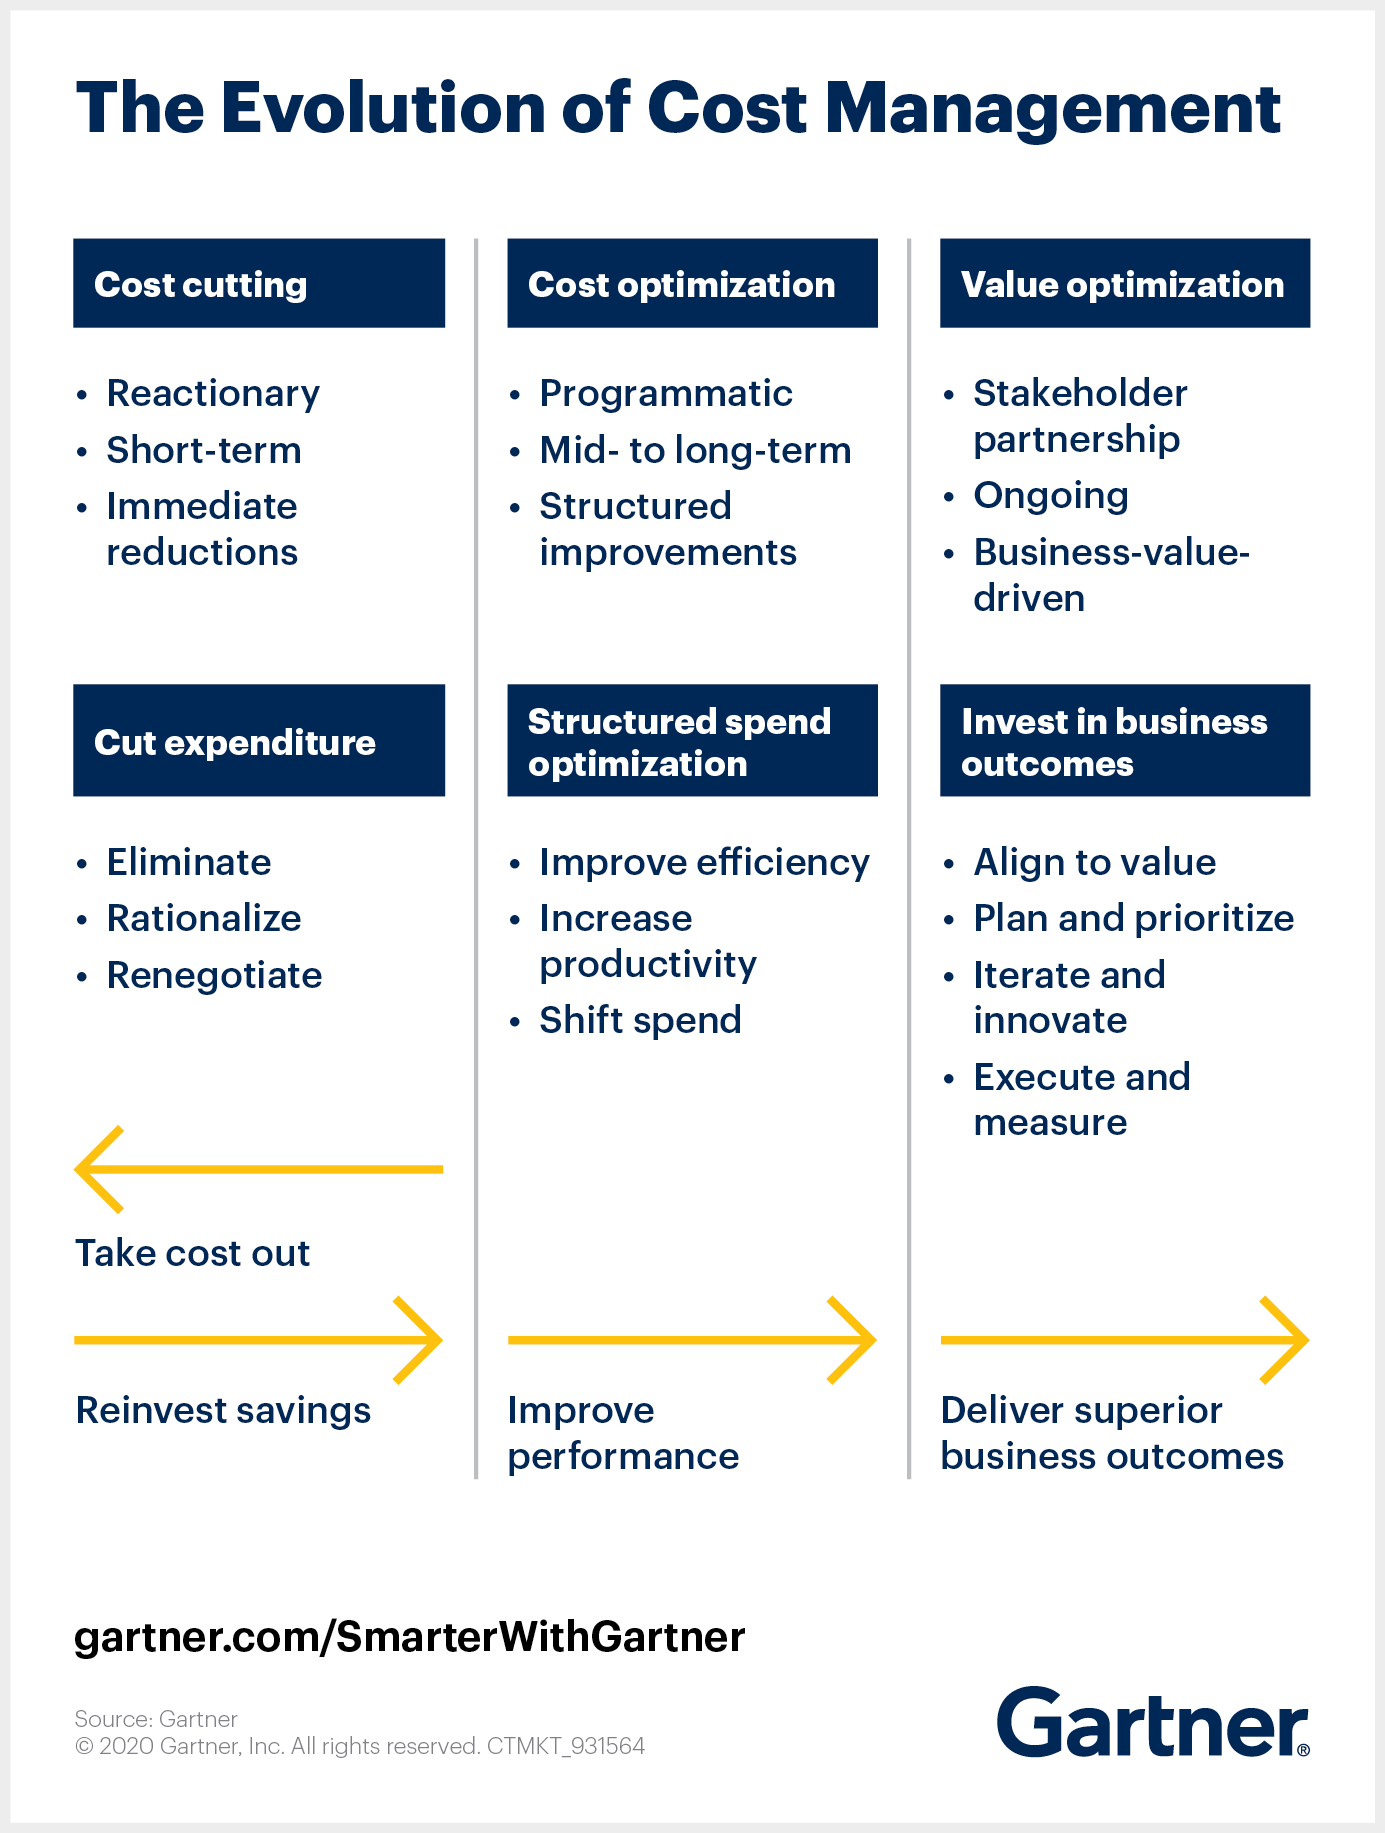 Gartner illustrates the evolution of cost management